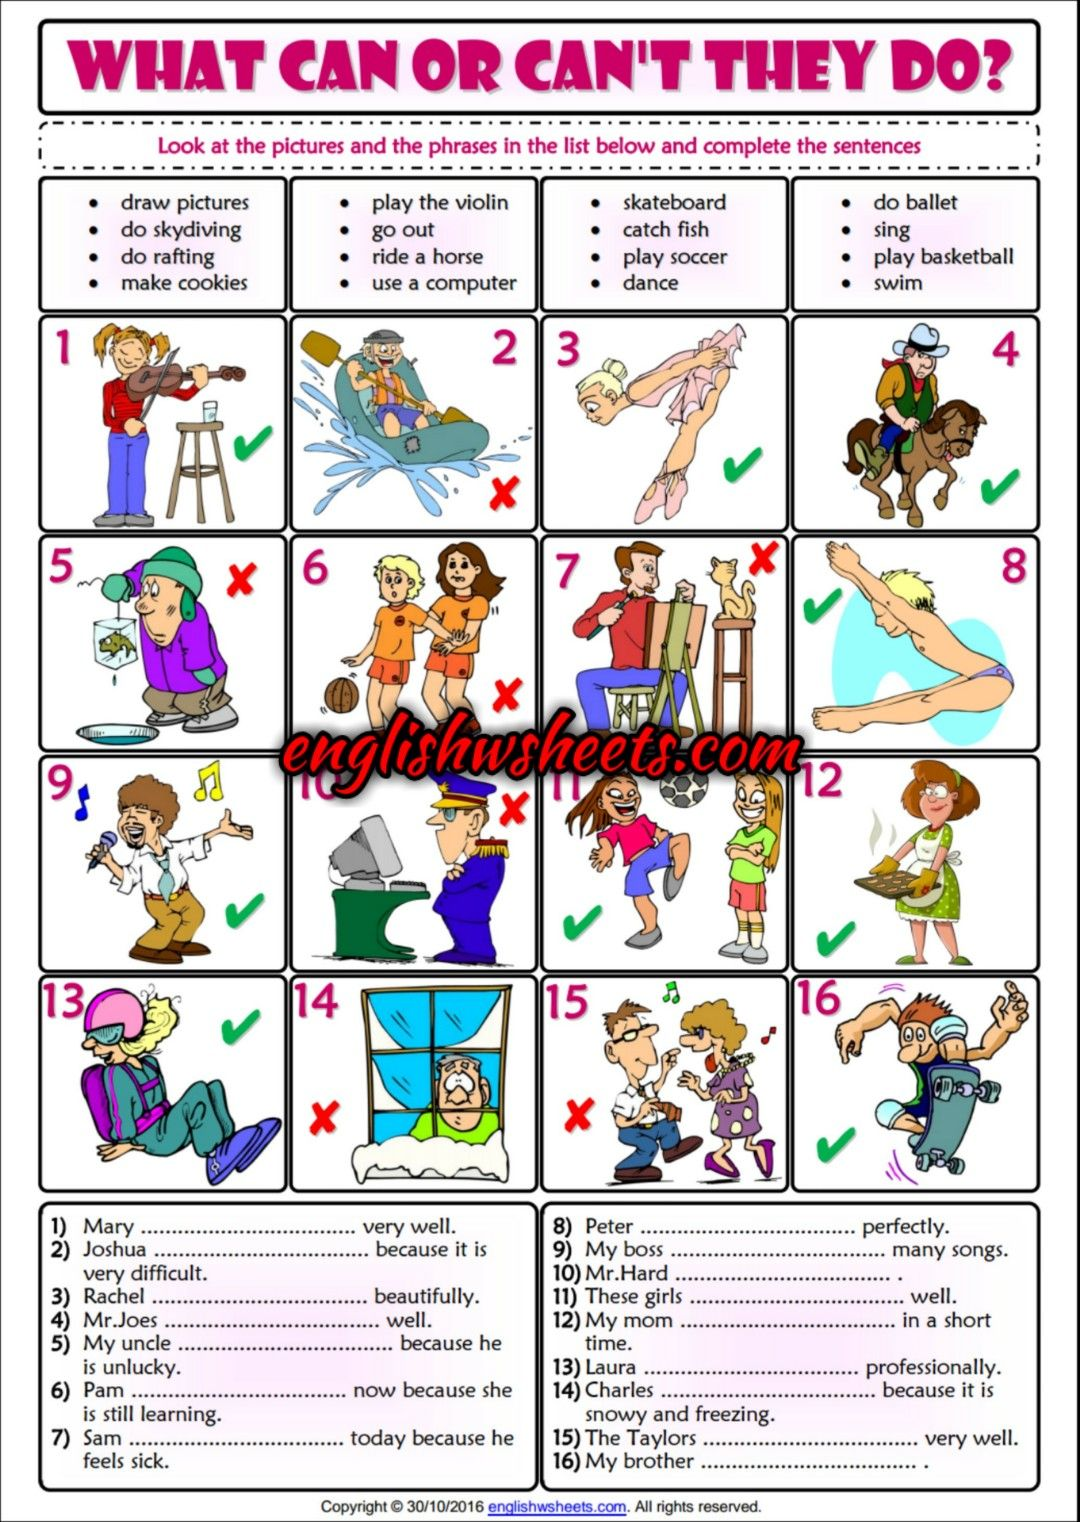 Can Or Can T Sentence Building Esl Printable Grammar Quiz